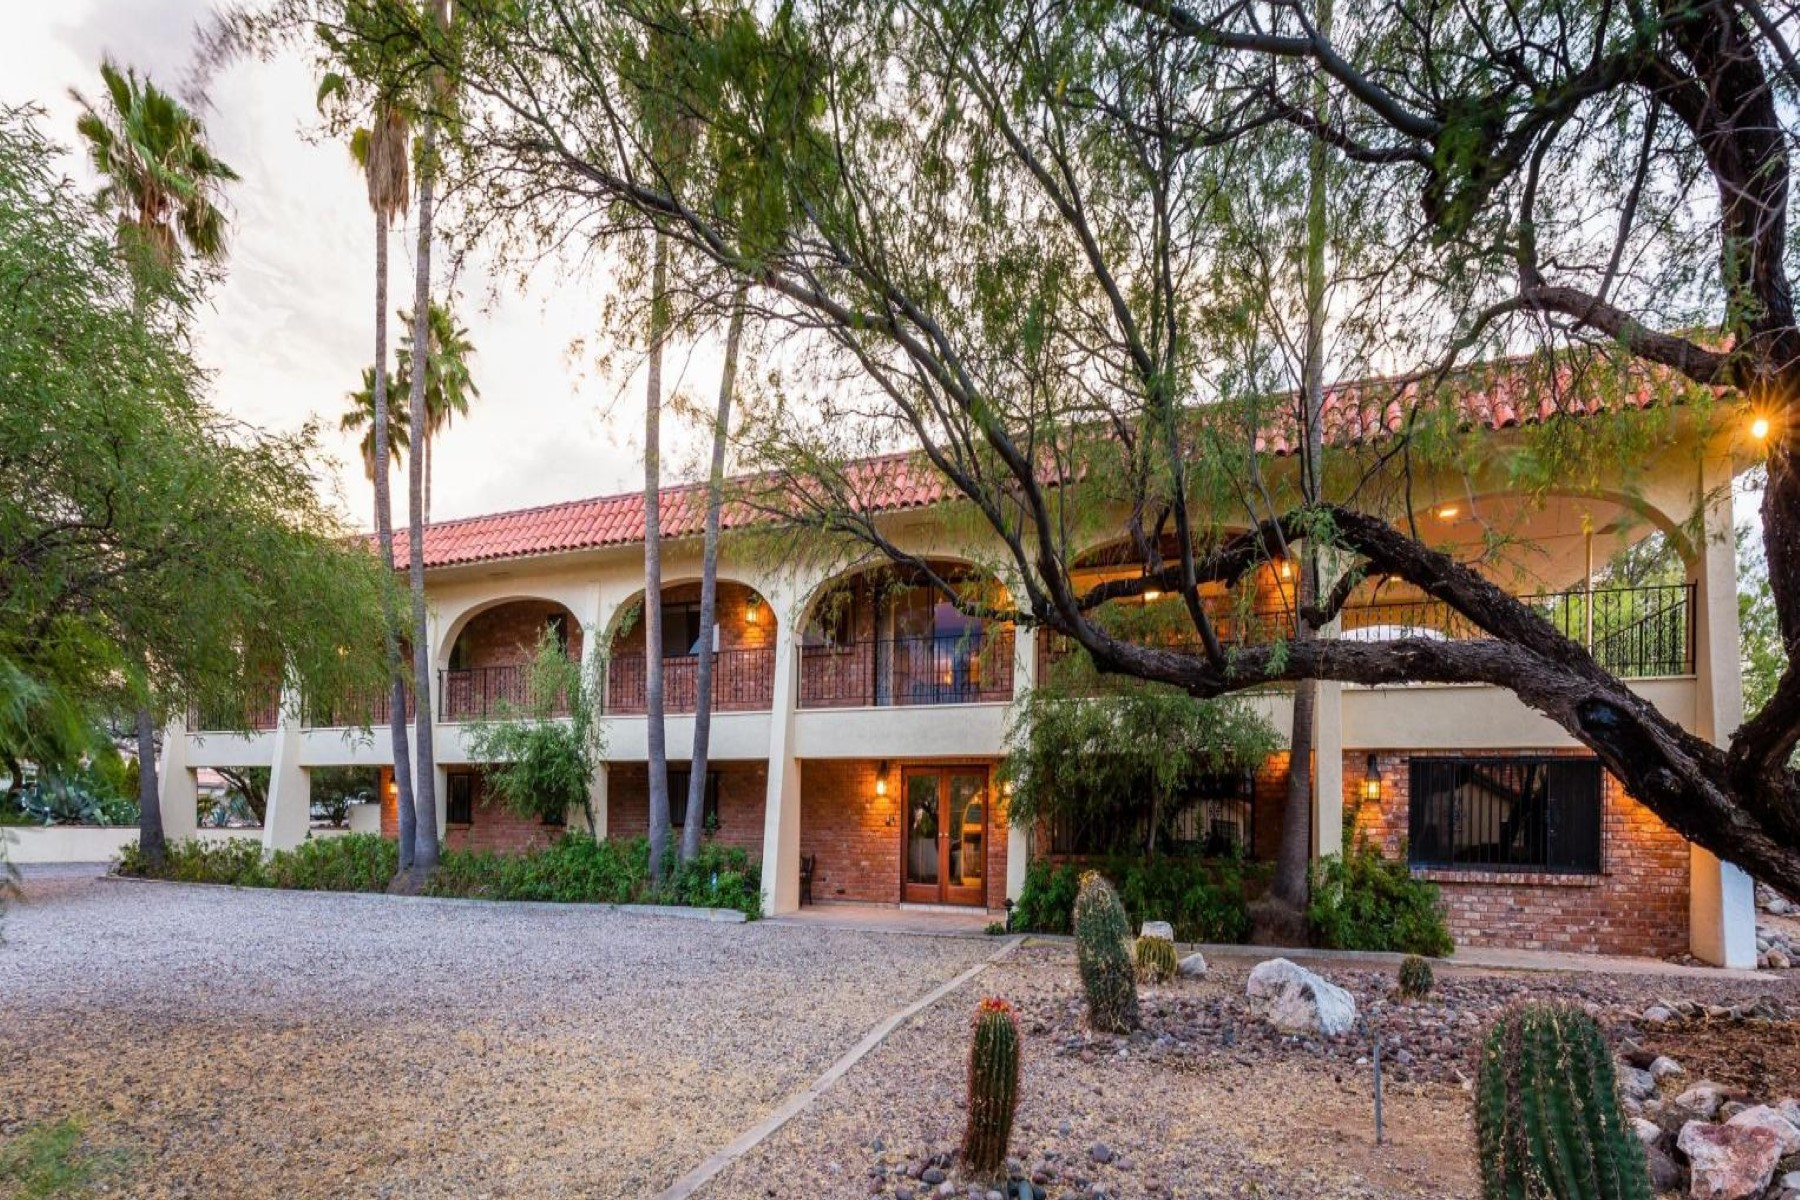 Villa per Vendita alle ore Private gated compound on nearly 3 acres providing a secluded feel 260 S Sewell Place Tucson, Arizona, 85748 Stati Uniti